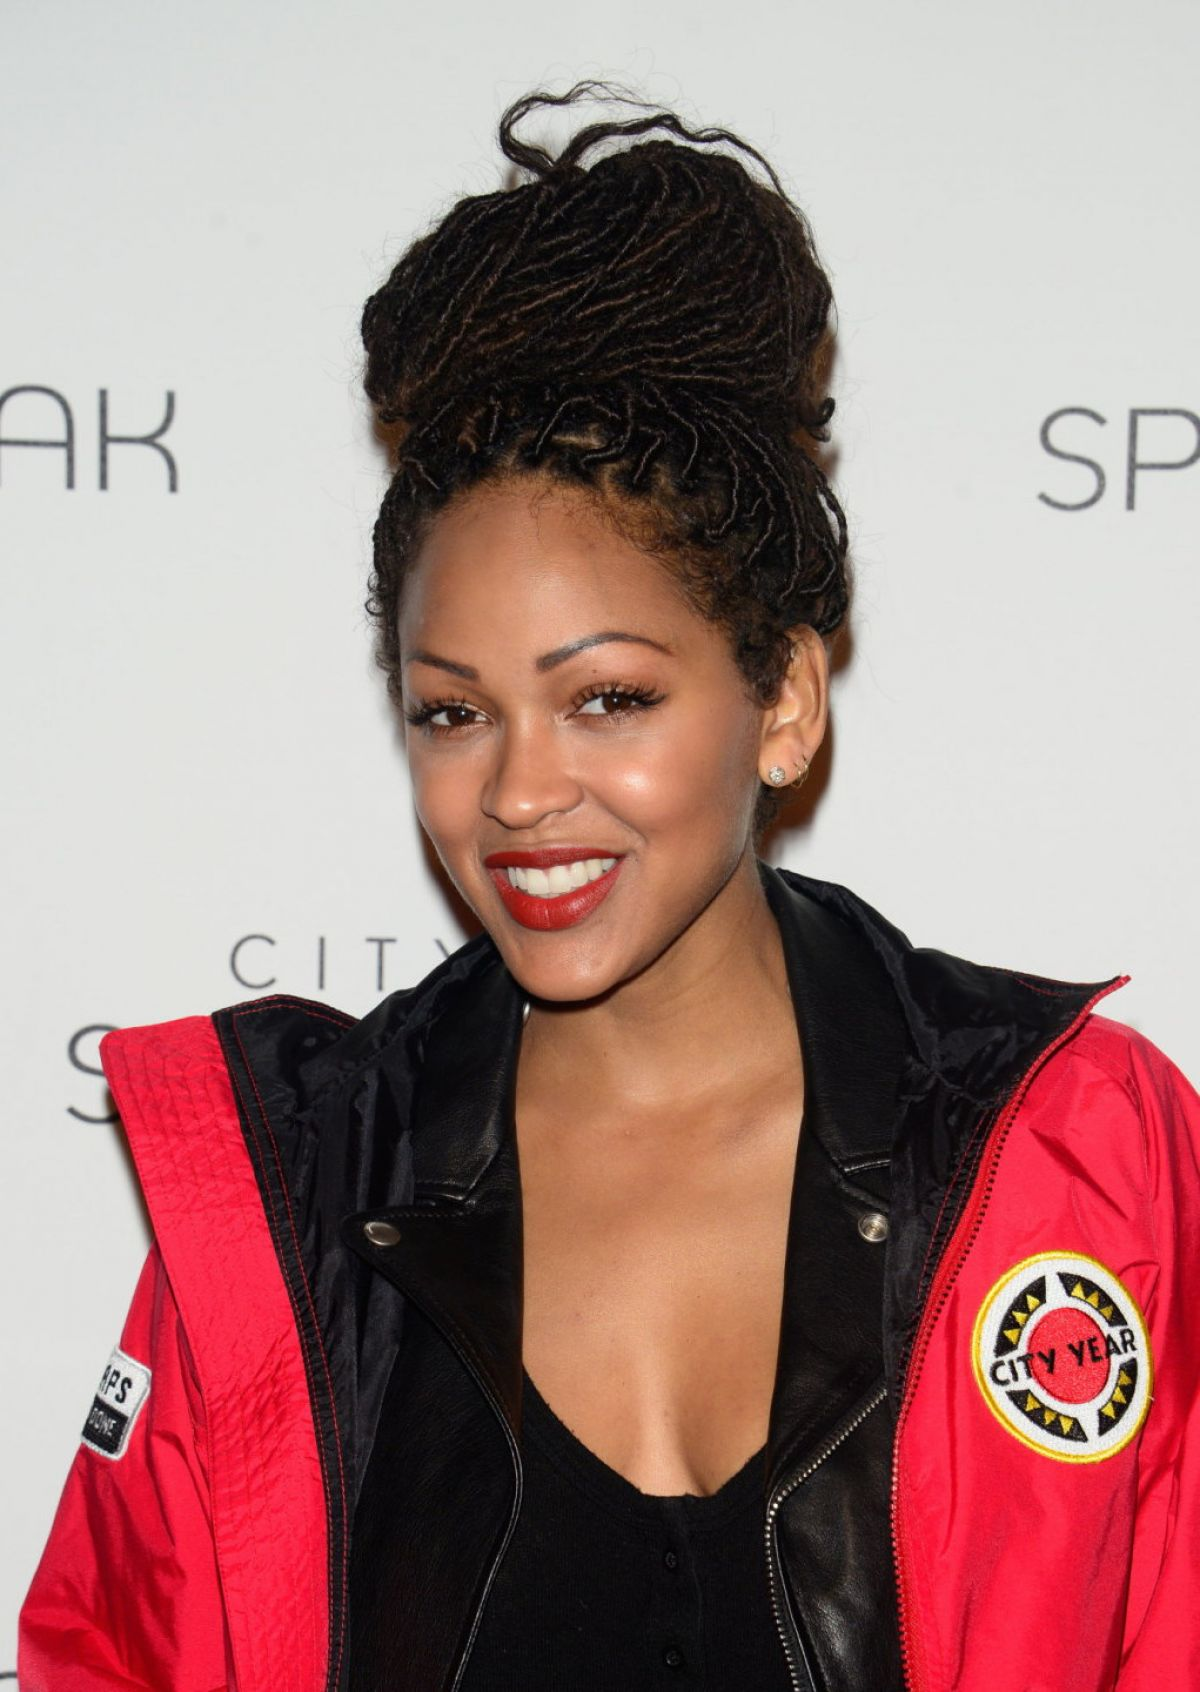 Meagan Good Archives - Page 2 of 4 - HawtCelebs - HawtCelebs